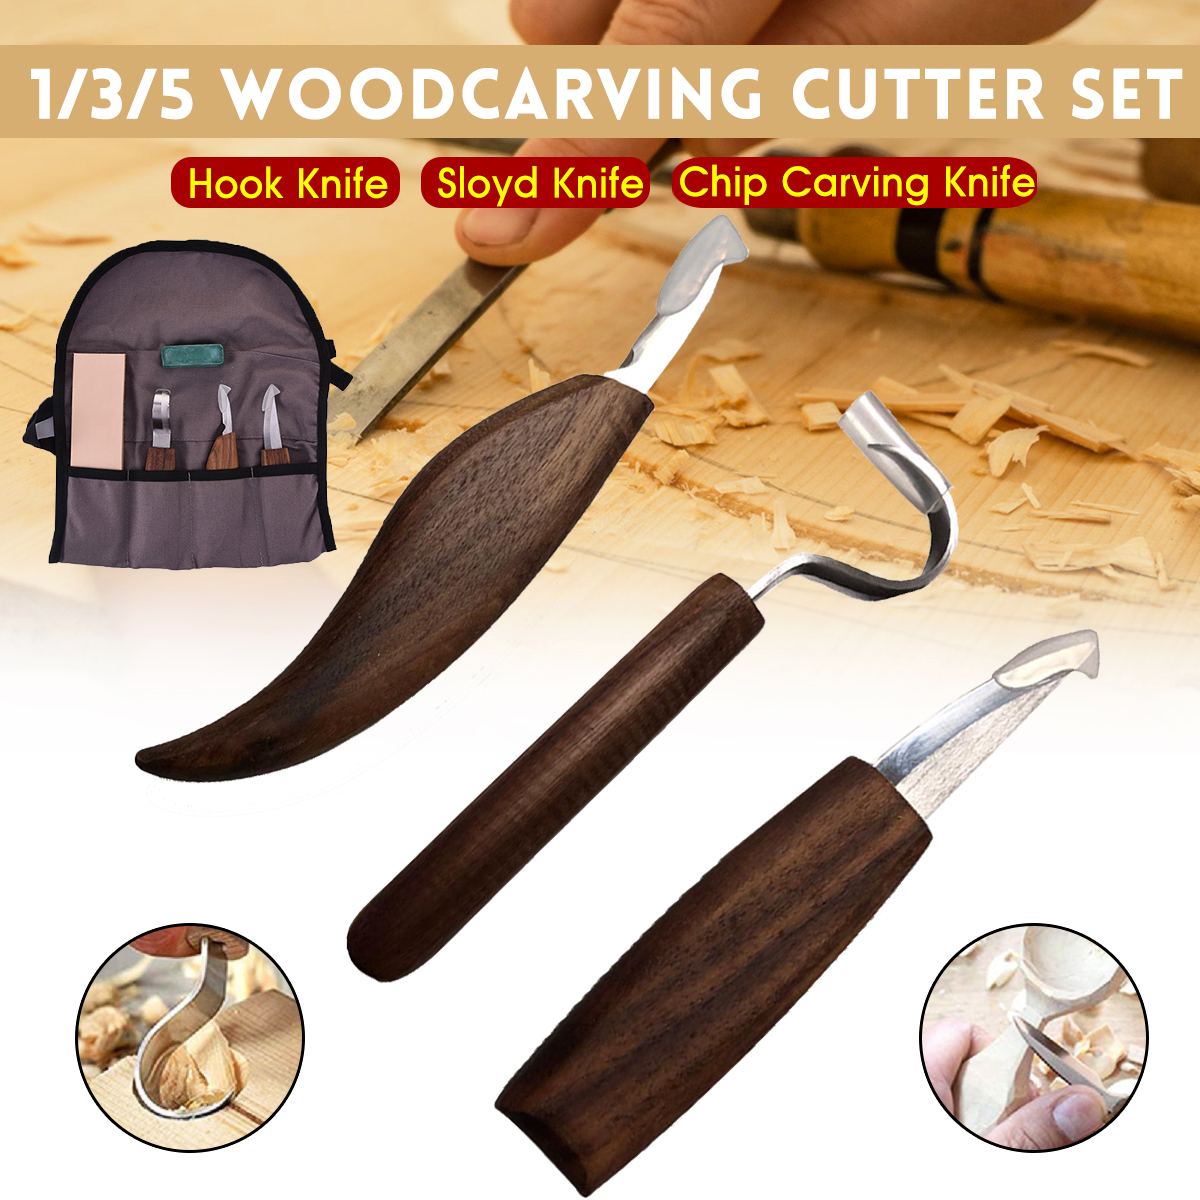 Doersupp 1/3/5Pcs Wood Carving Knife Chisel Woodworking Cutter Hand Tool Set Peeling Woodcarving Sculptural Spoon Carving Cutter